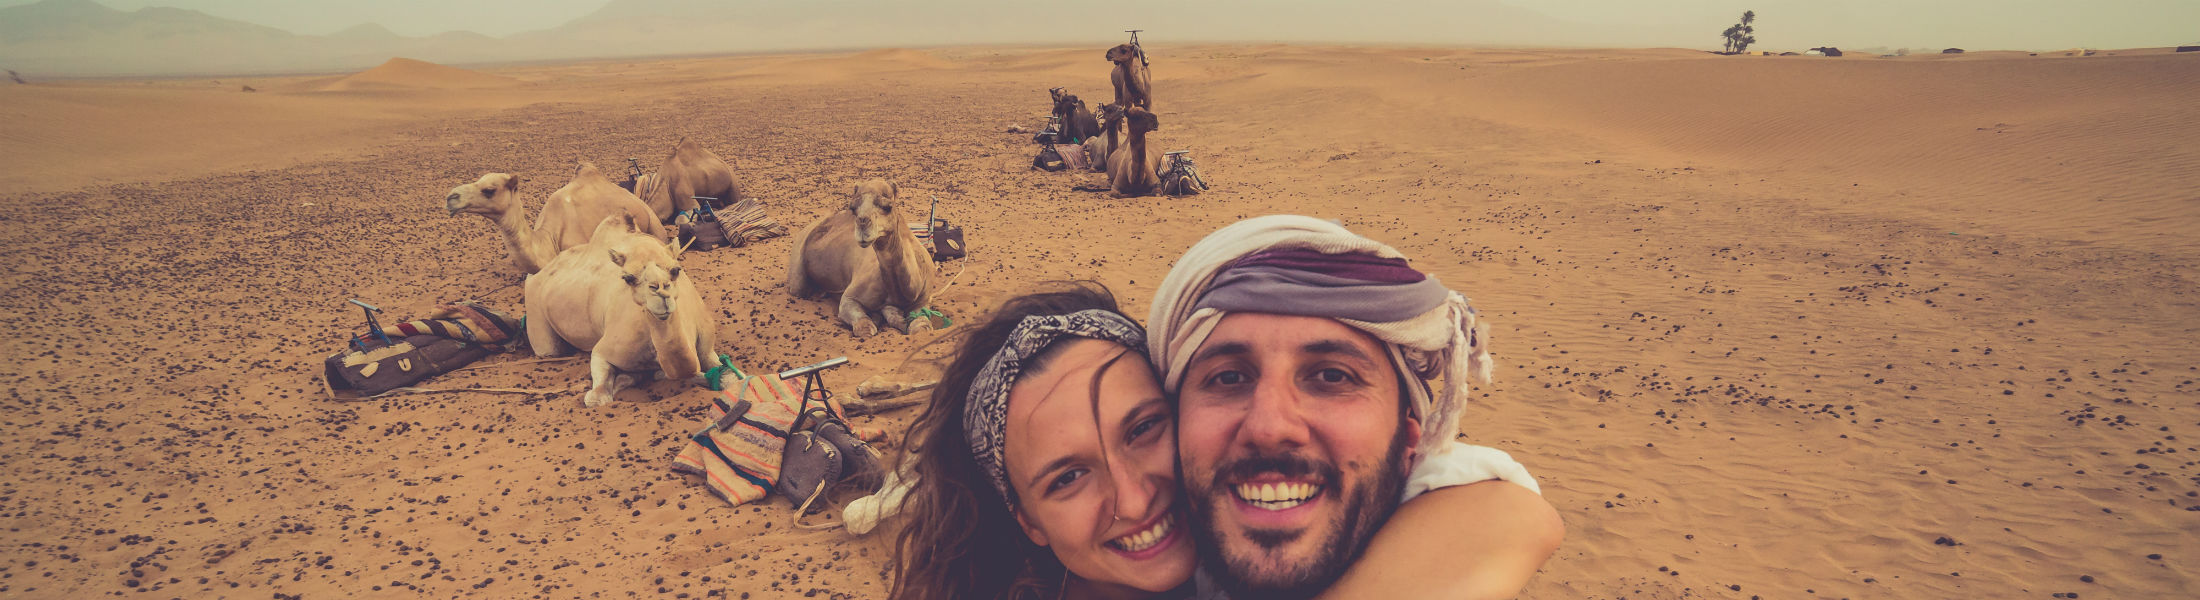 Couple enjoying safari desert